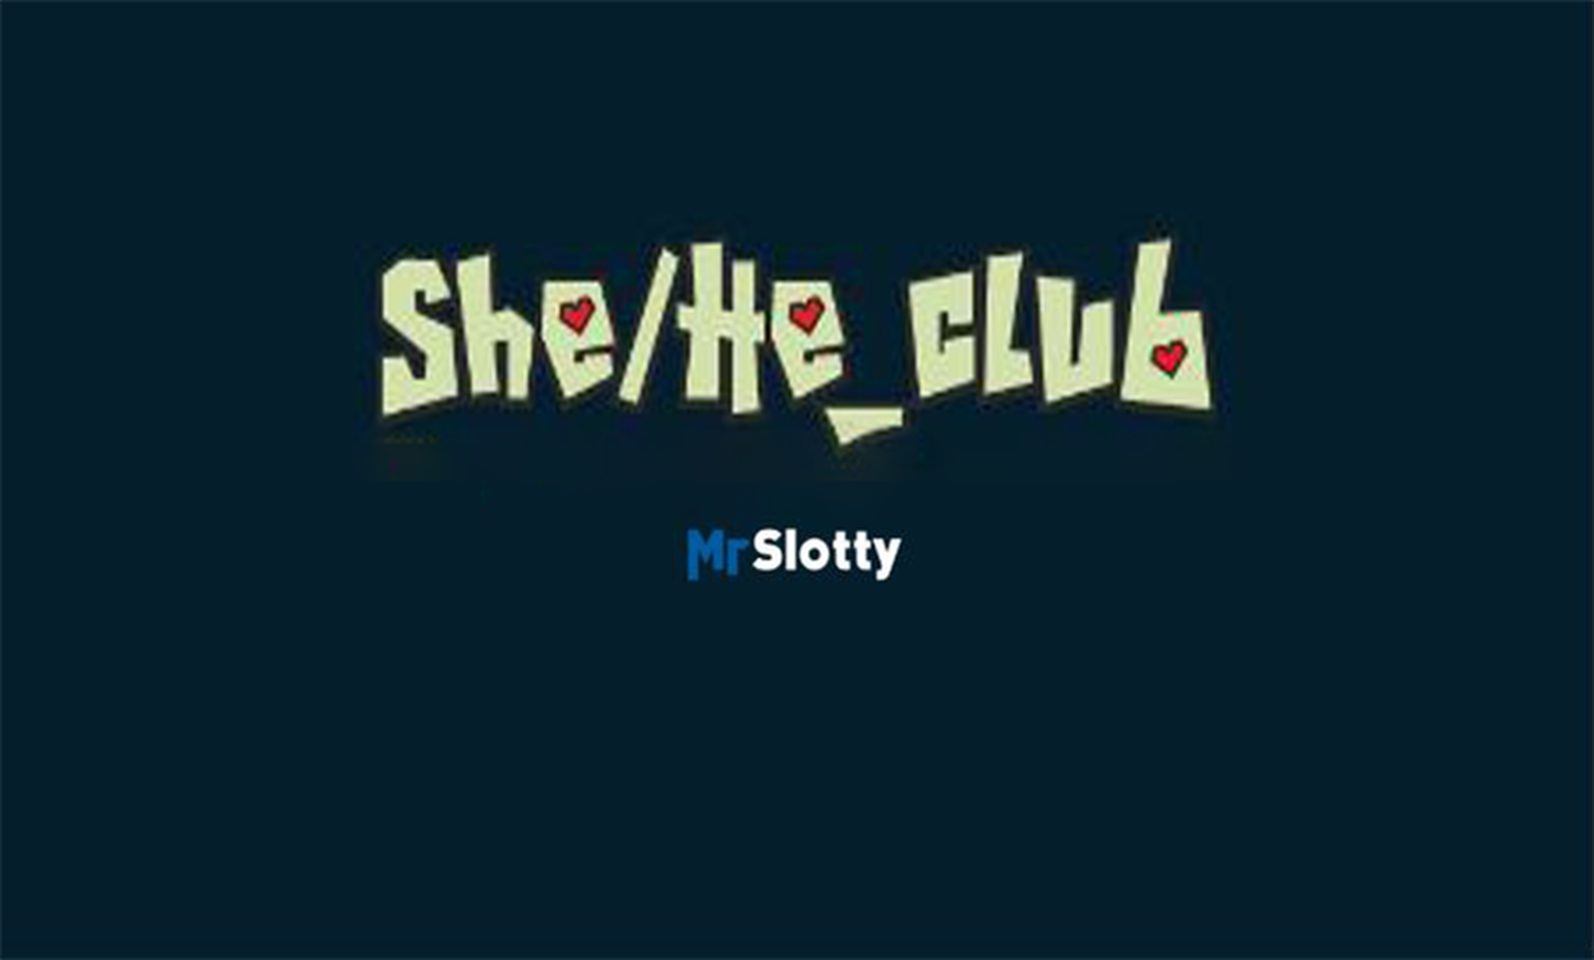 The She/He Club Online Slot Demo Game by Mr Slotty